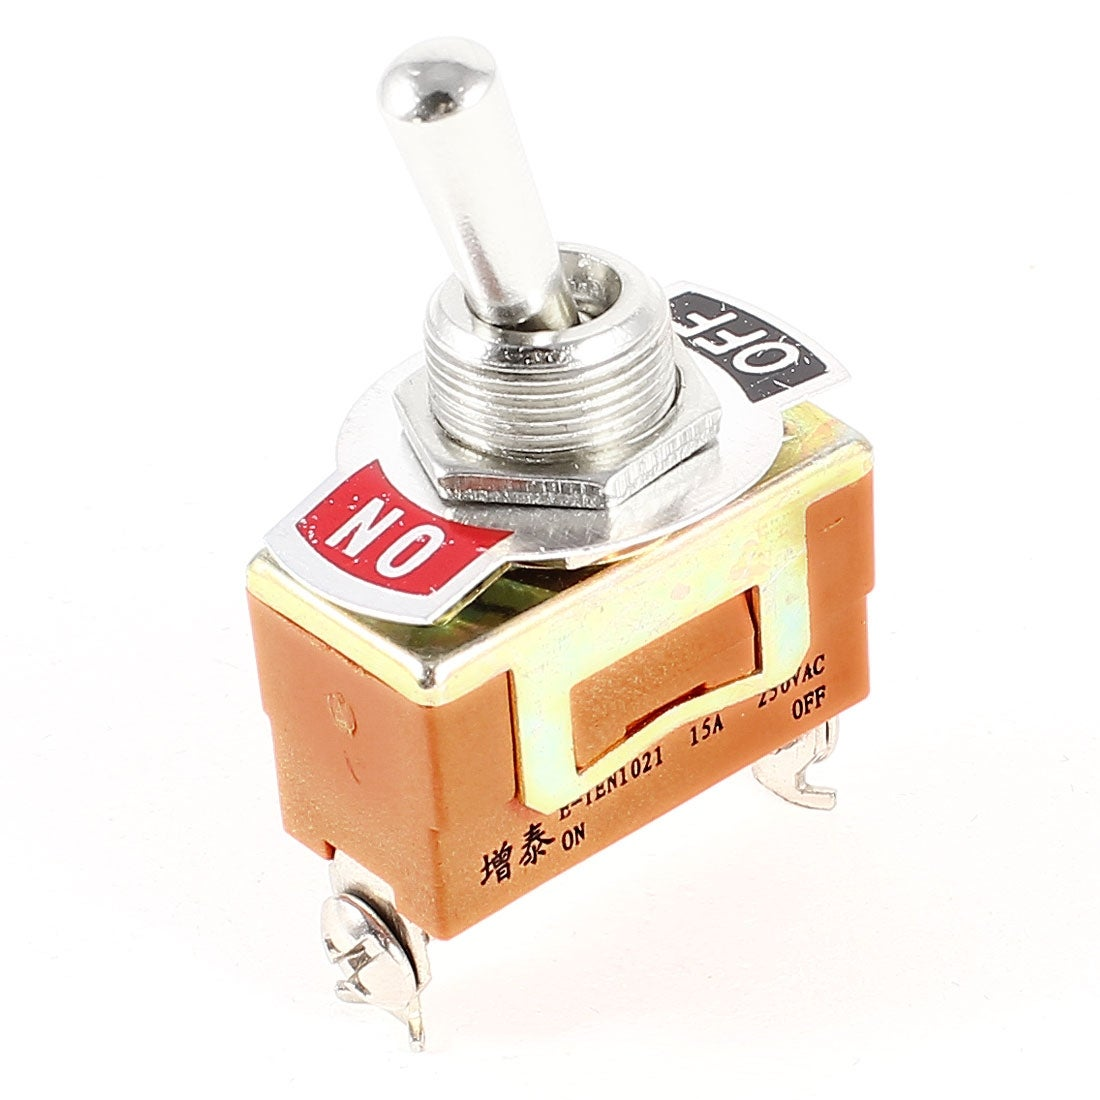 Of Momentary Switches Spst Should Only Require Two Terminals Shop E Ten1021 2 Position On Off Toggle Switch Ac 250v 15a Free Shipping Orders Over 45 18256028